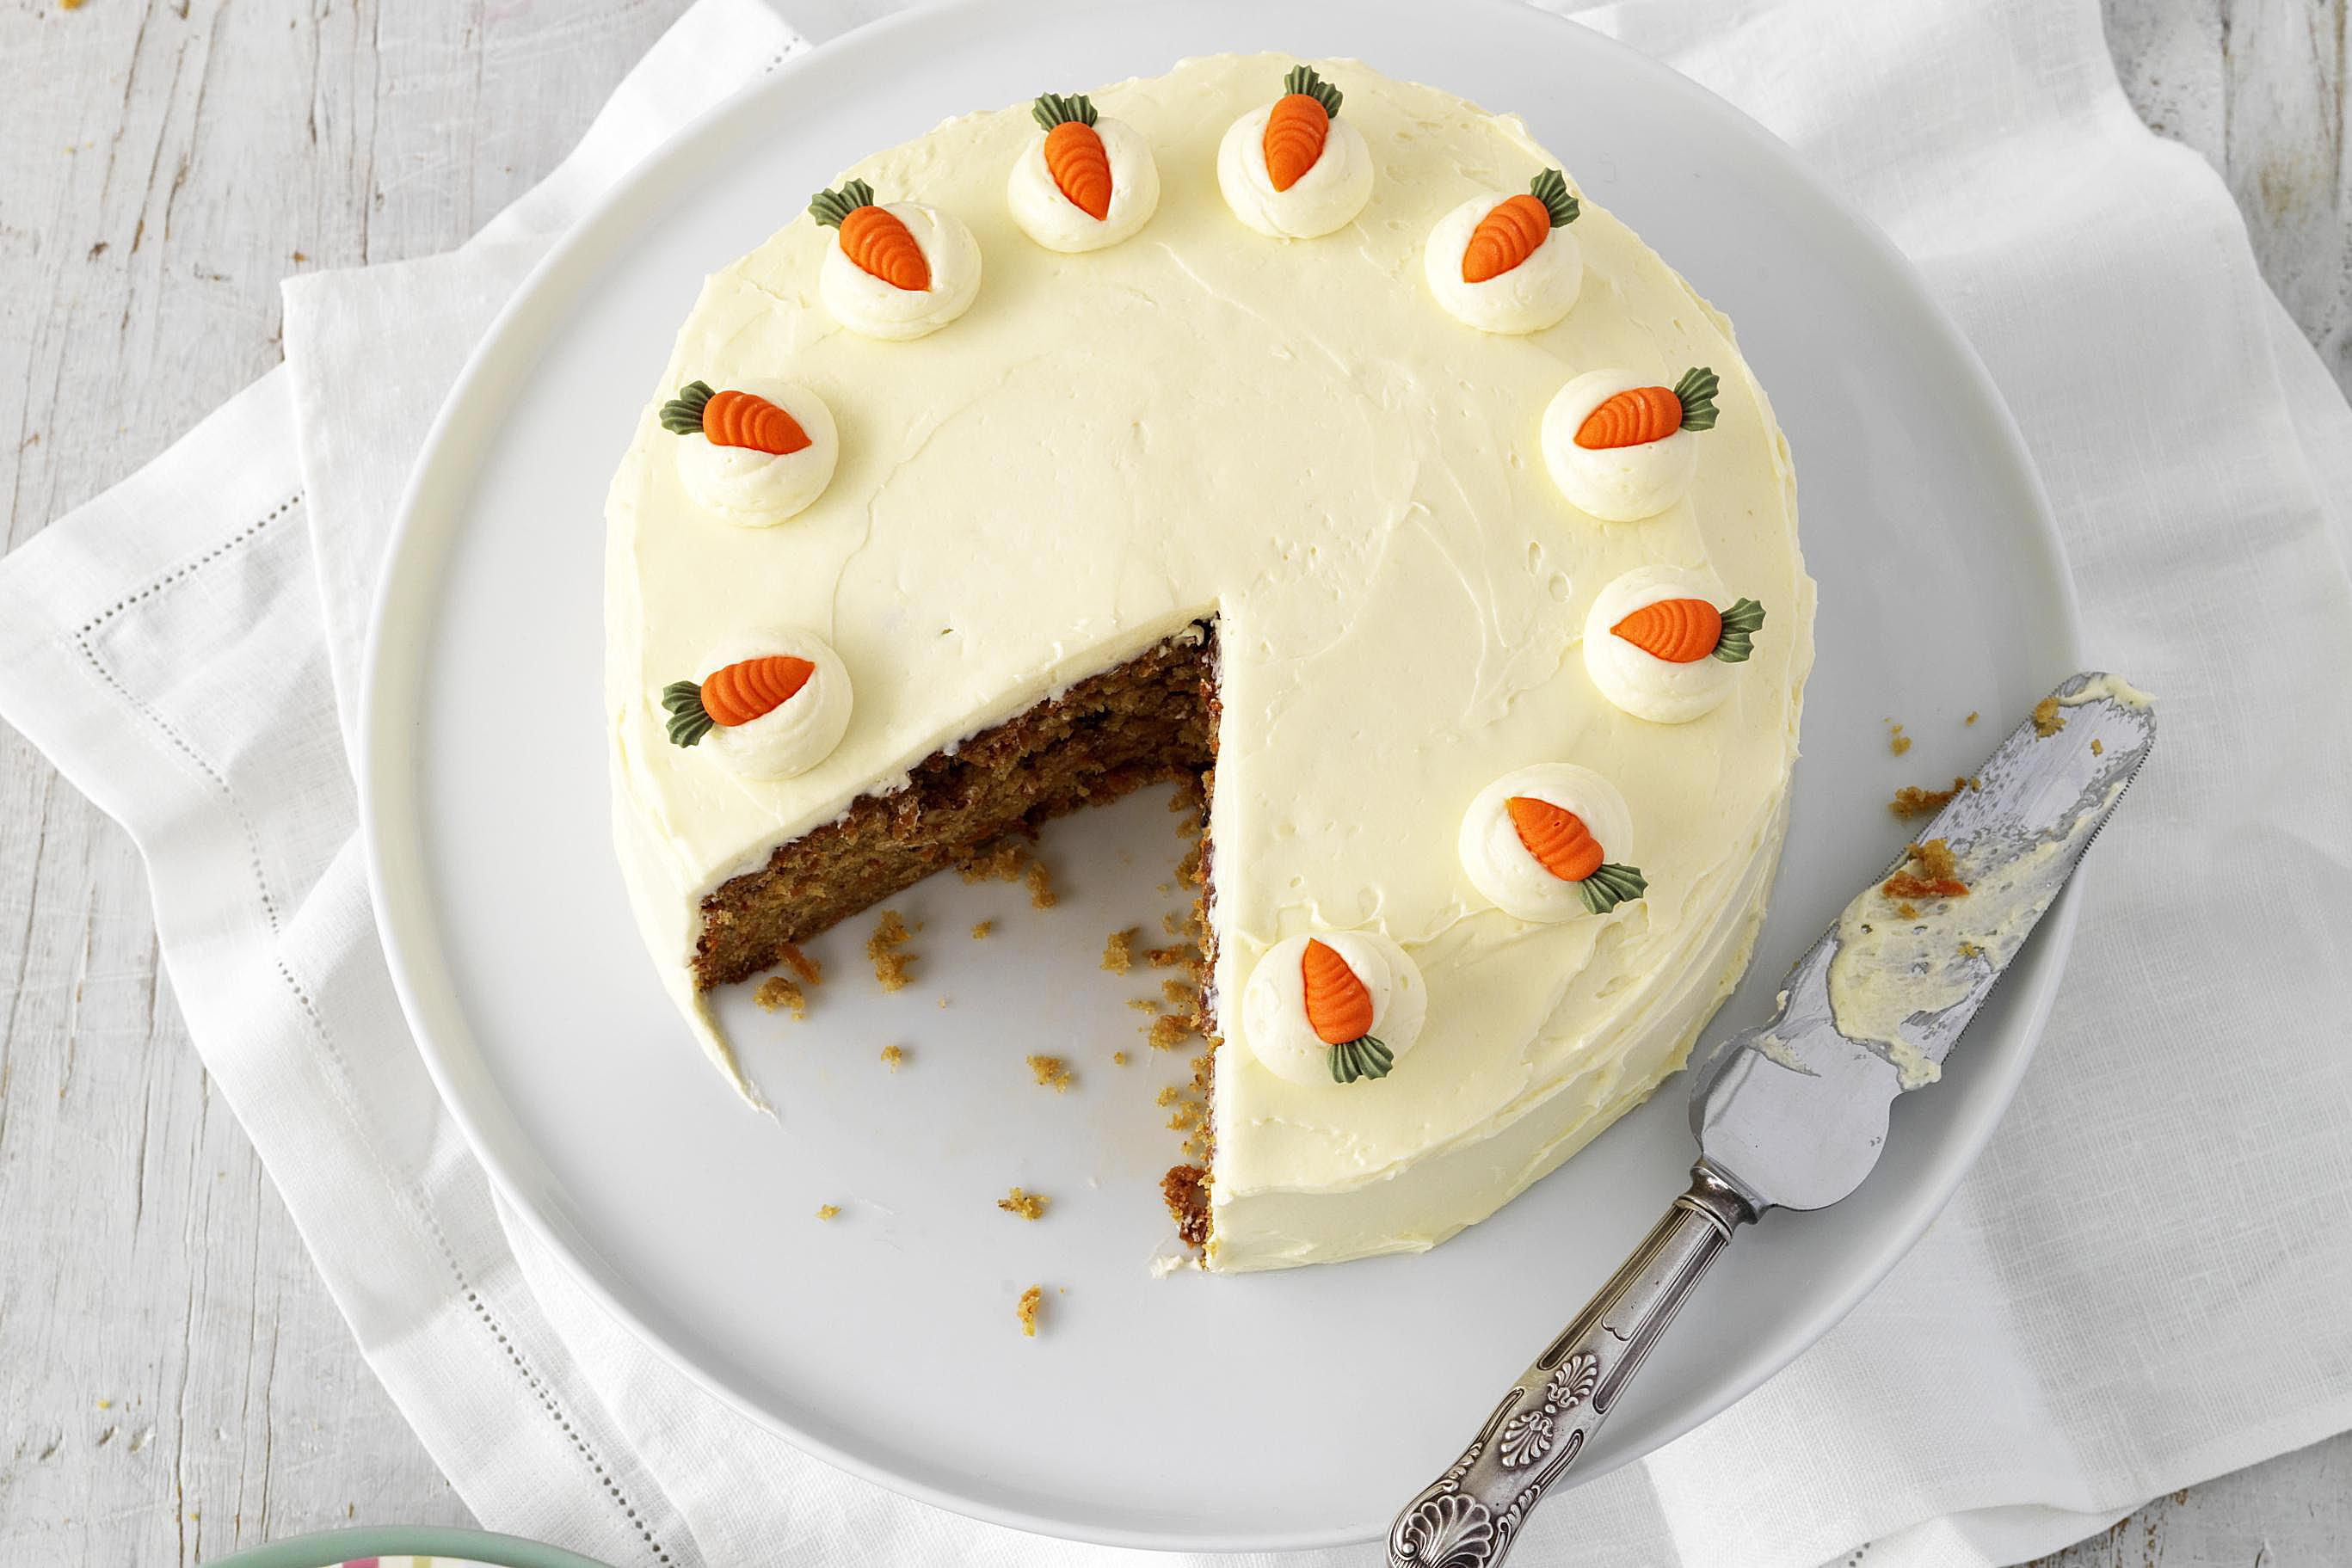 This is the World's Best Carrot Cake Recipe